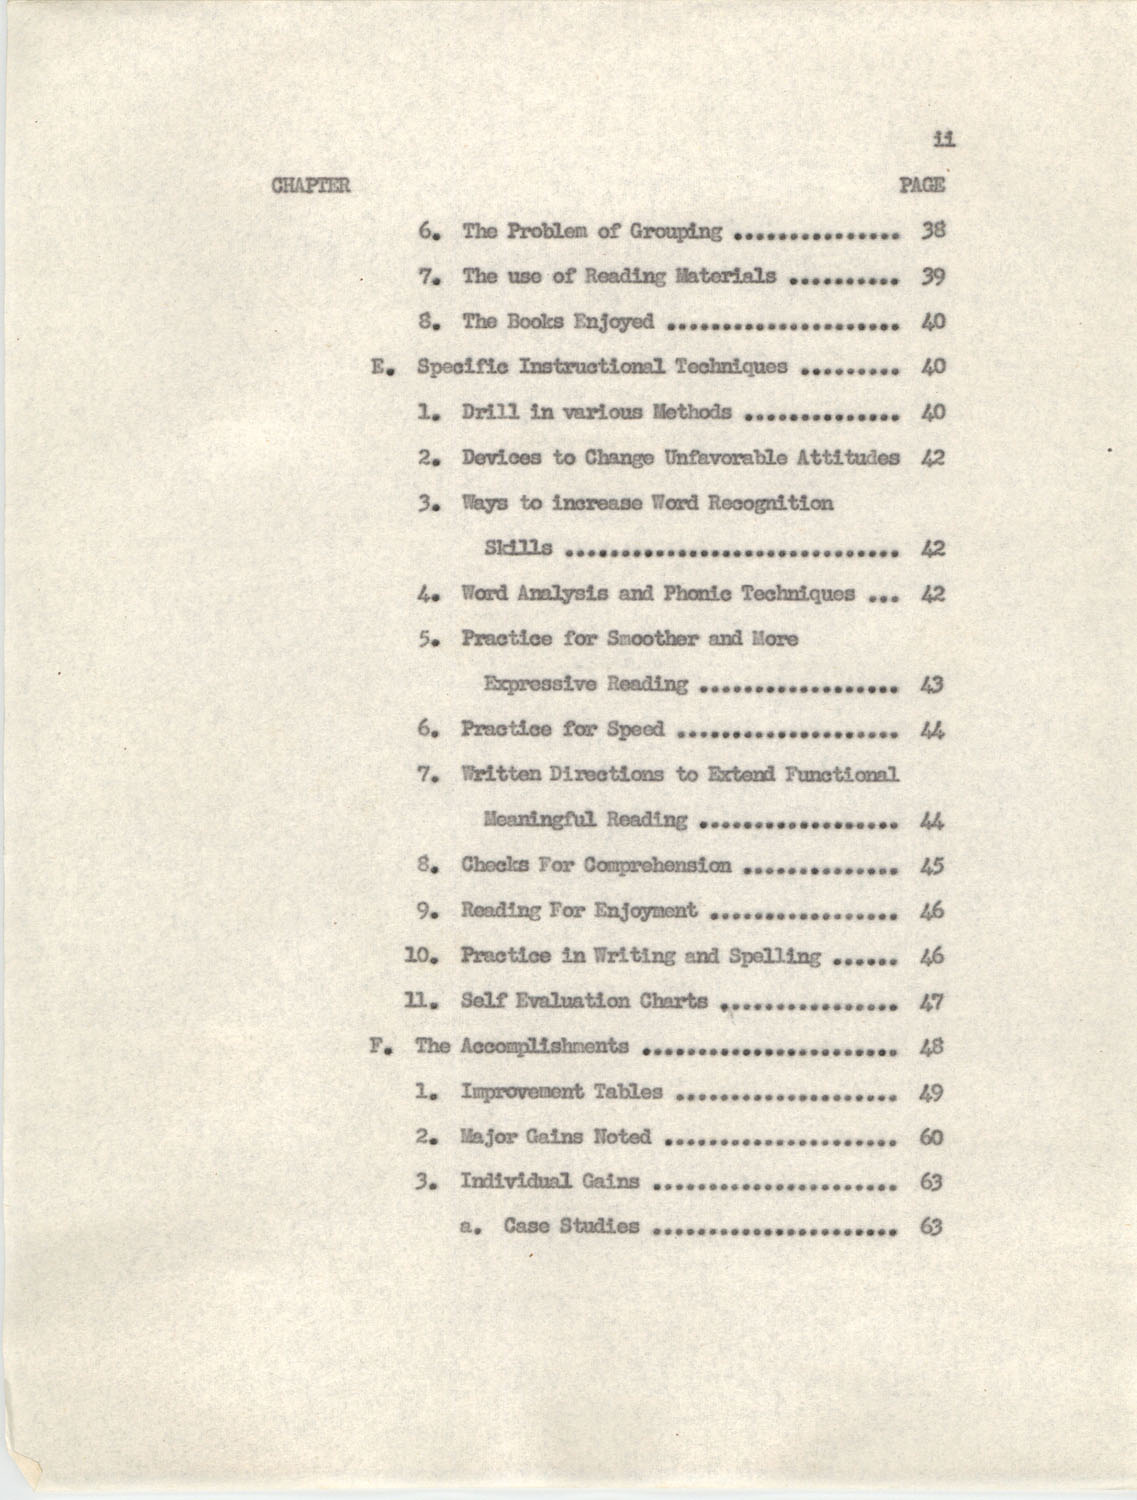 An Experiment in Individualizing Instruction in Reading in a Sixth Grade Class, 1946, Table of Contents 11b